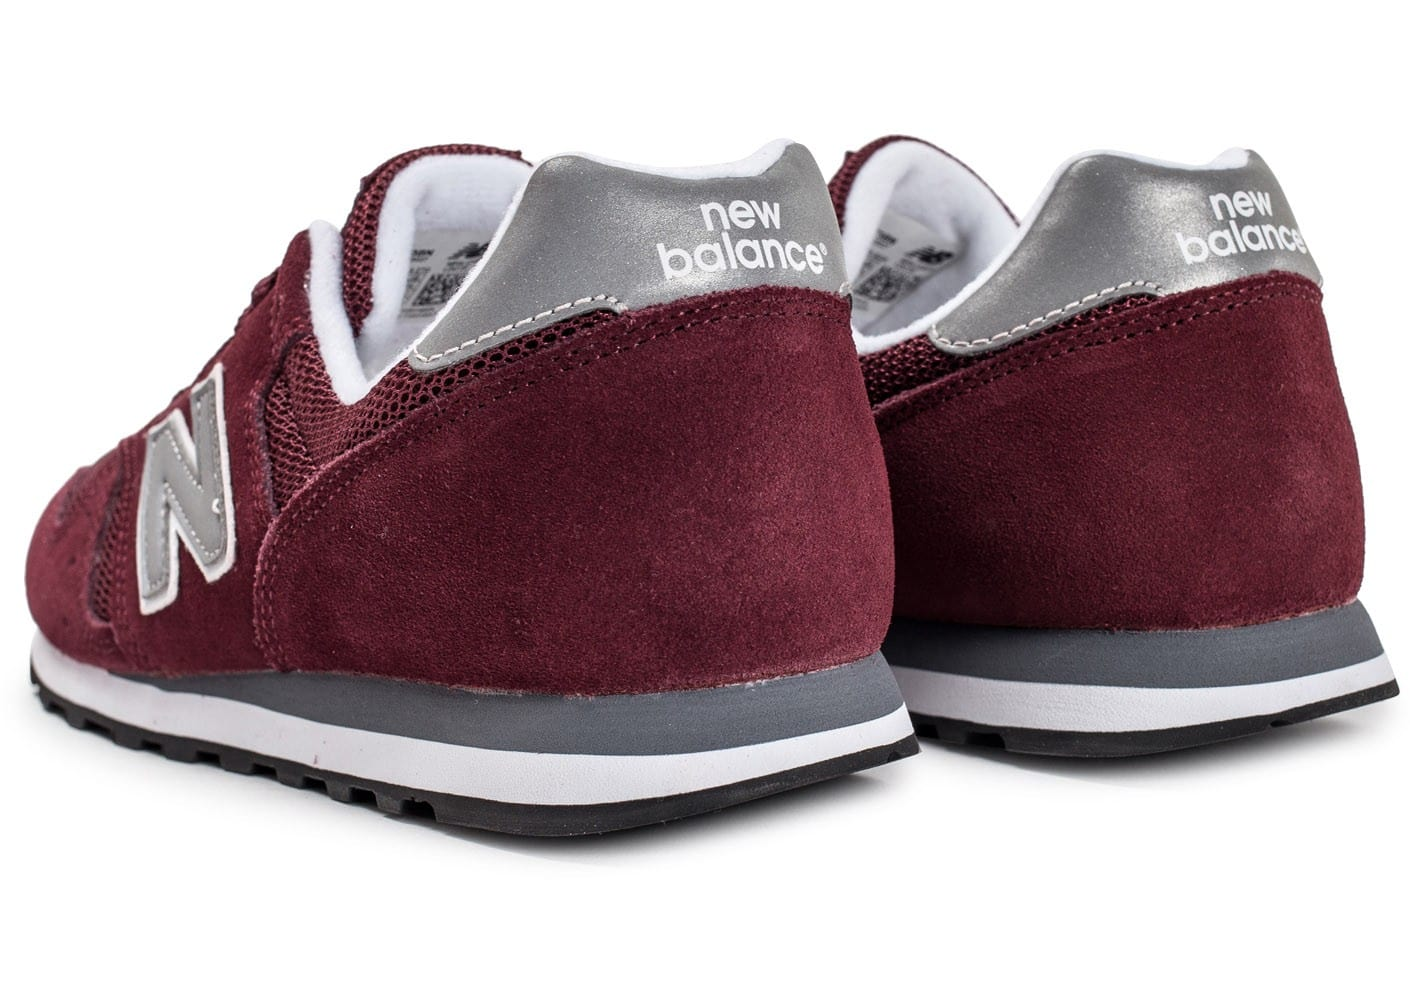 Soldes - U420rbn Mesh BordeauxNew Balance Avec Mastercard Vente ZmfaWcoWIU